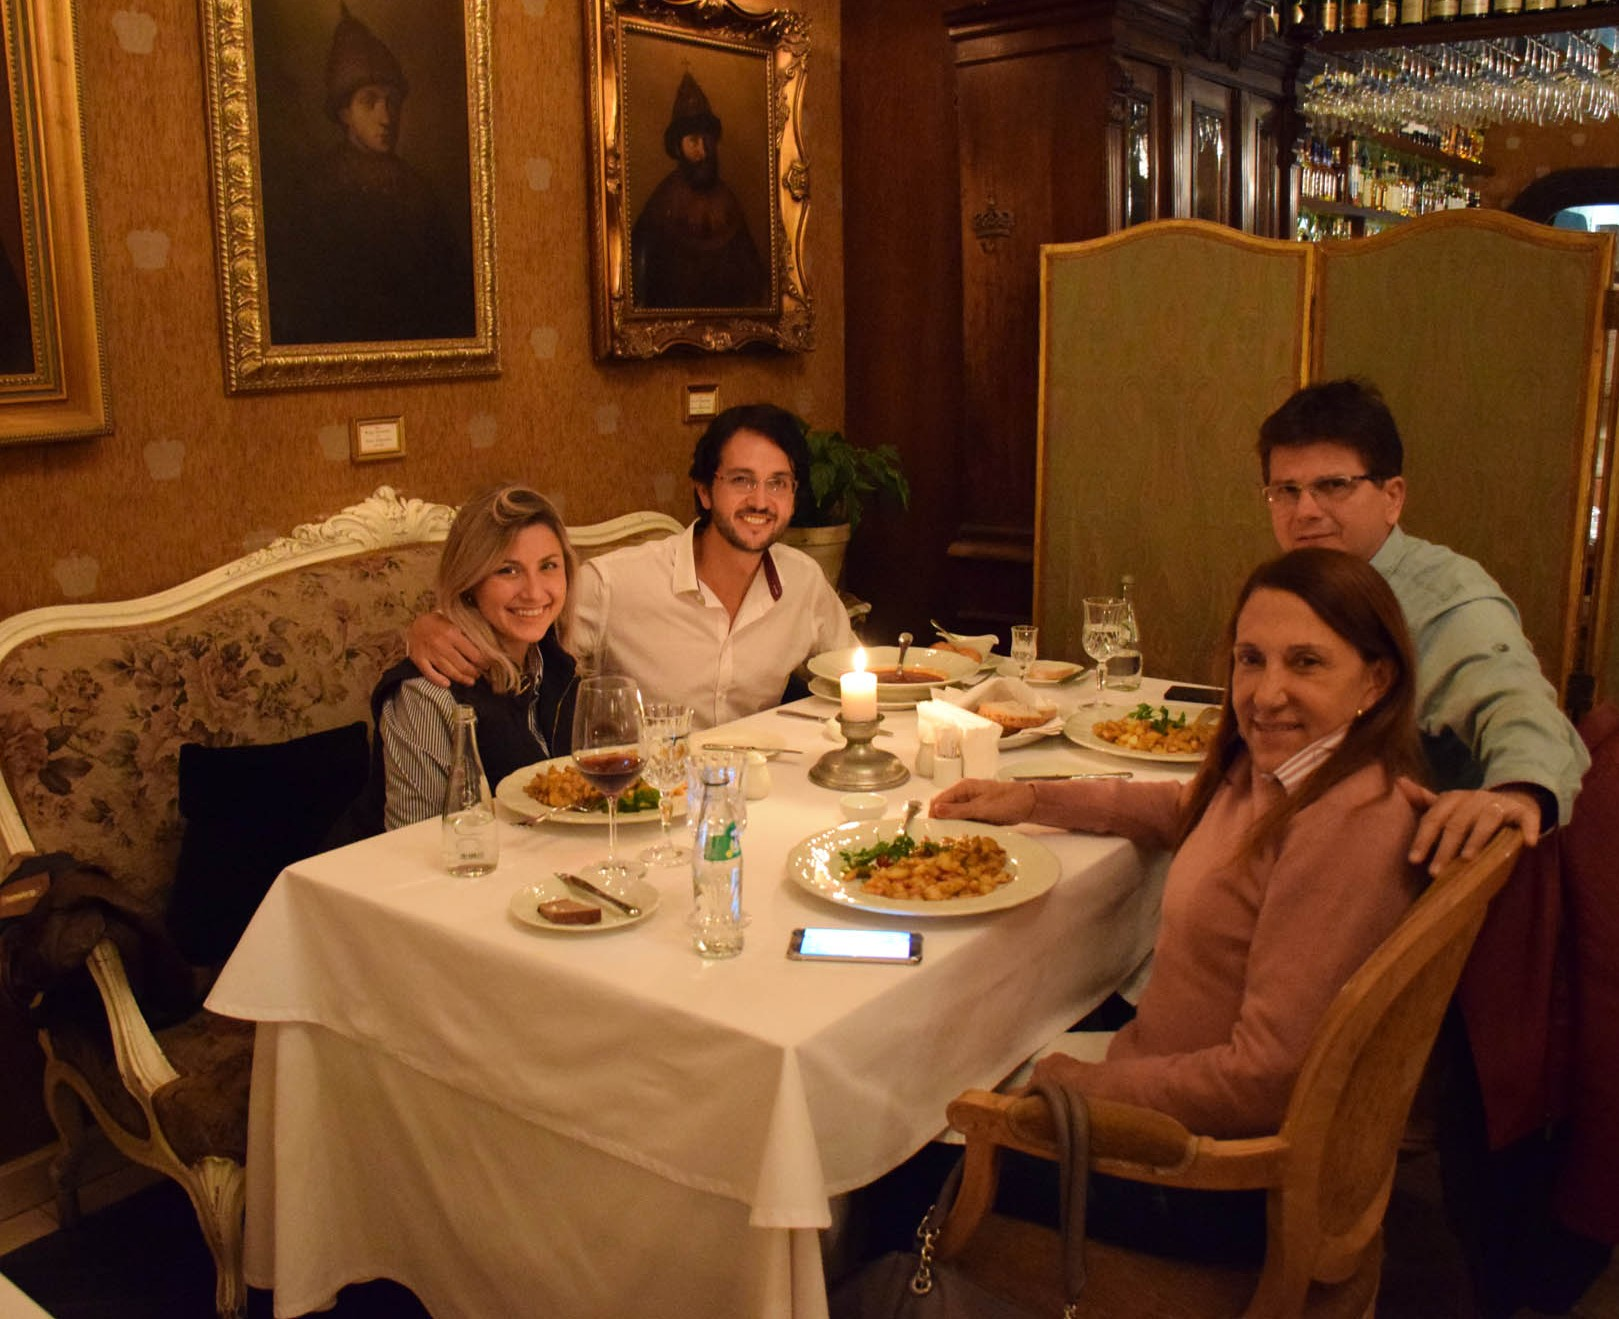 TZAR Restaurant st petersburg russia where to eat 05